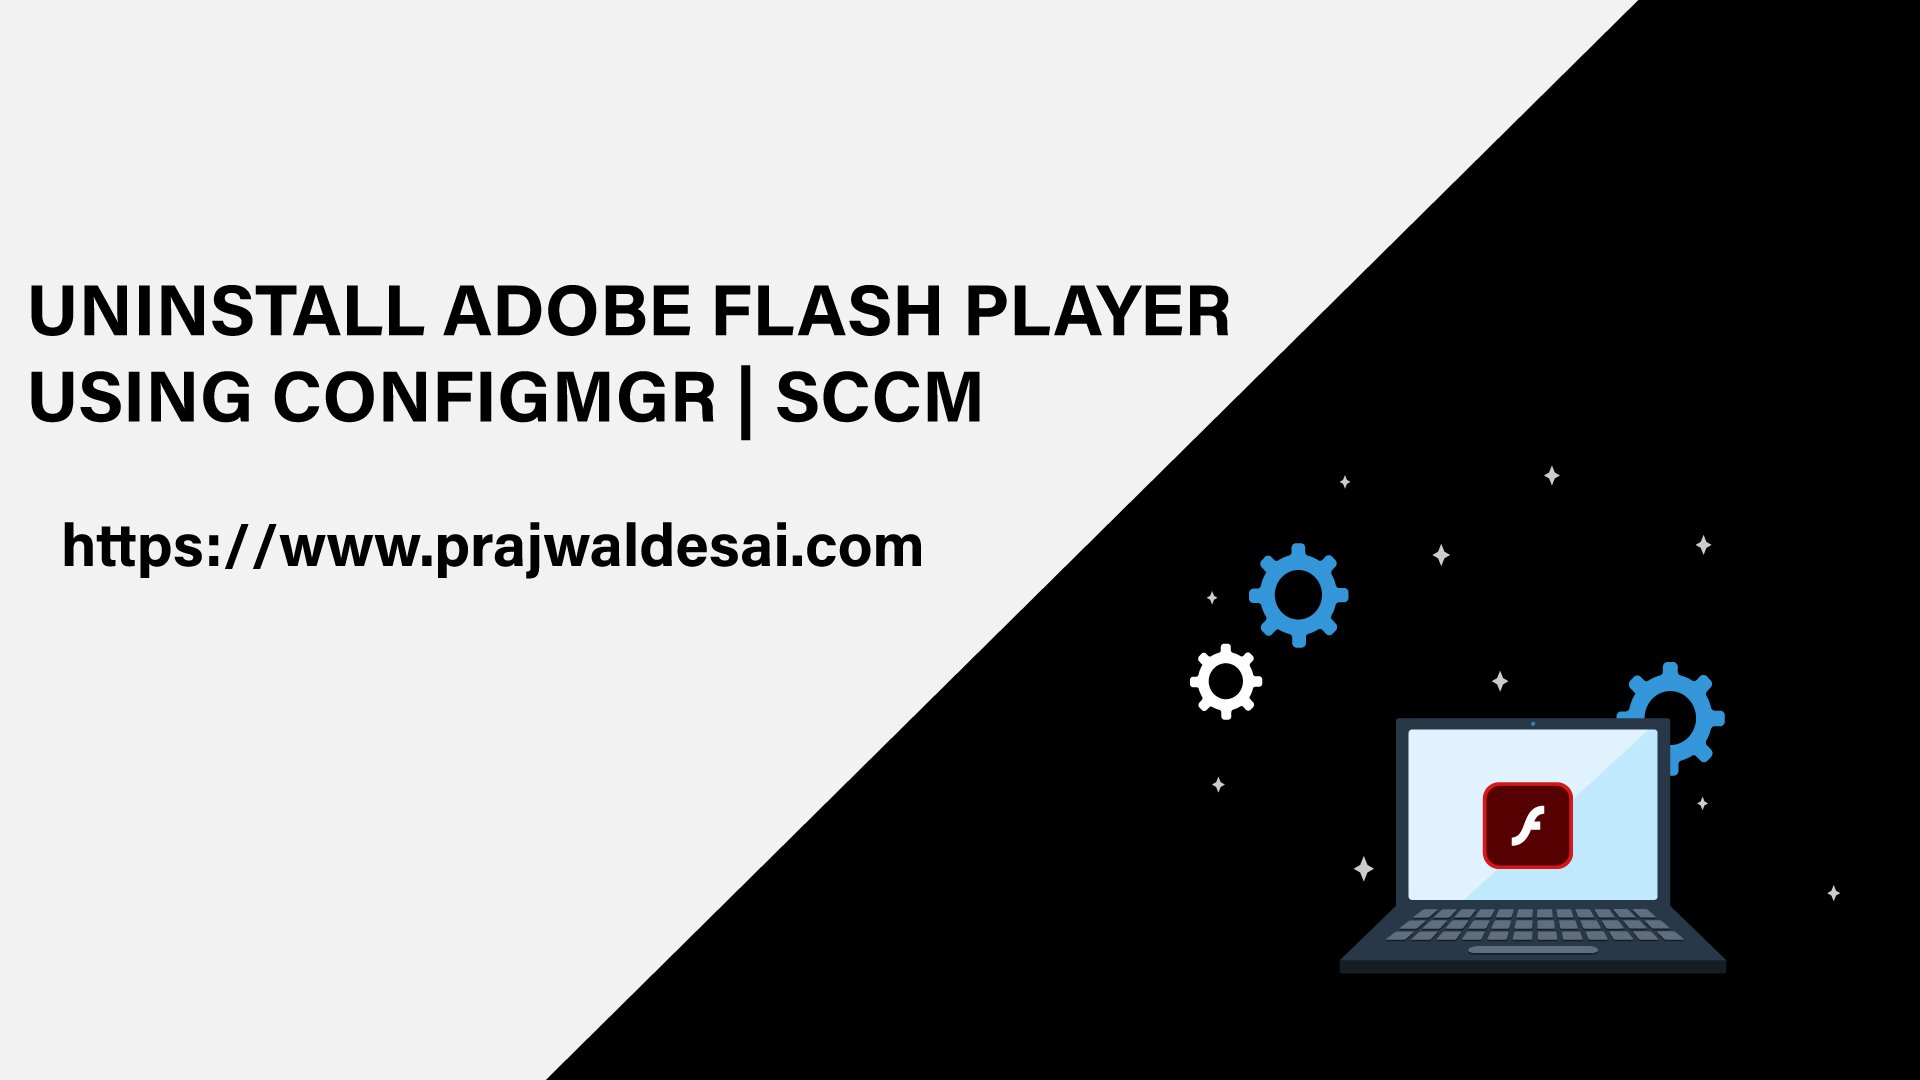 Uninstall Adobe Flash Player using SCCM